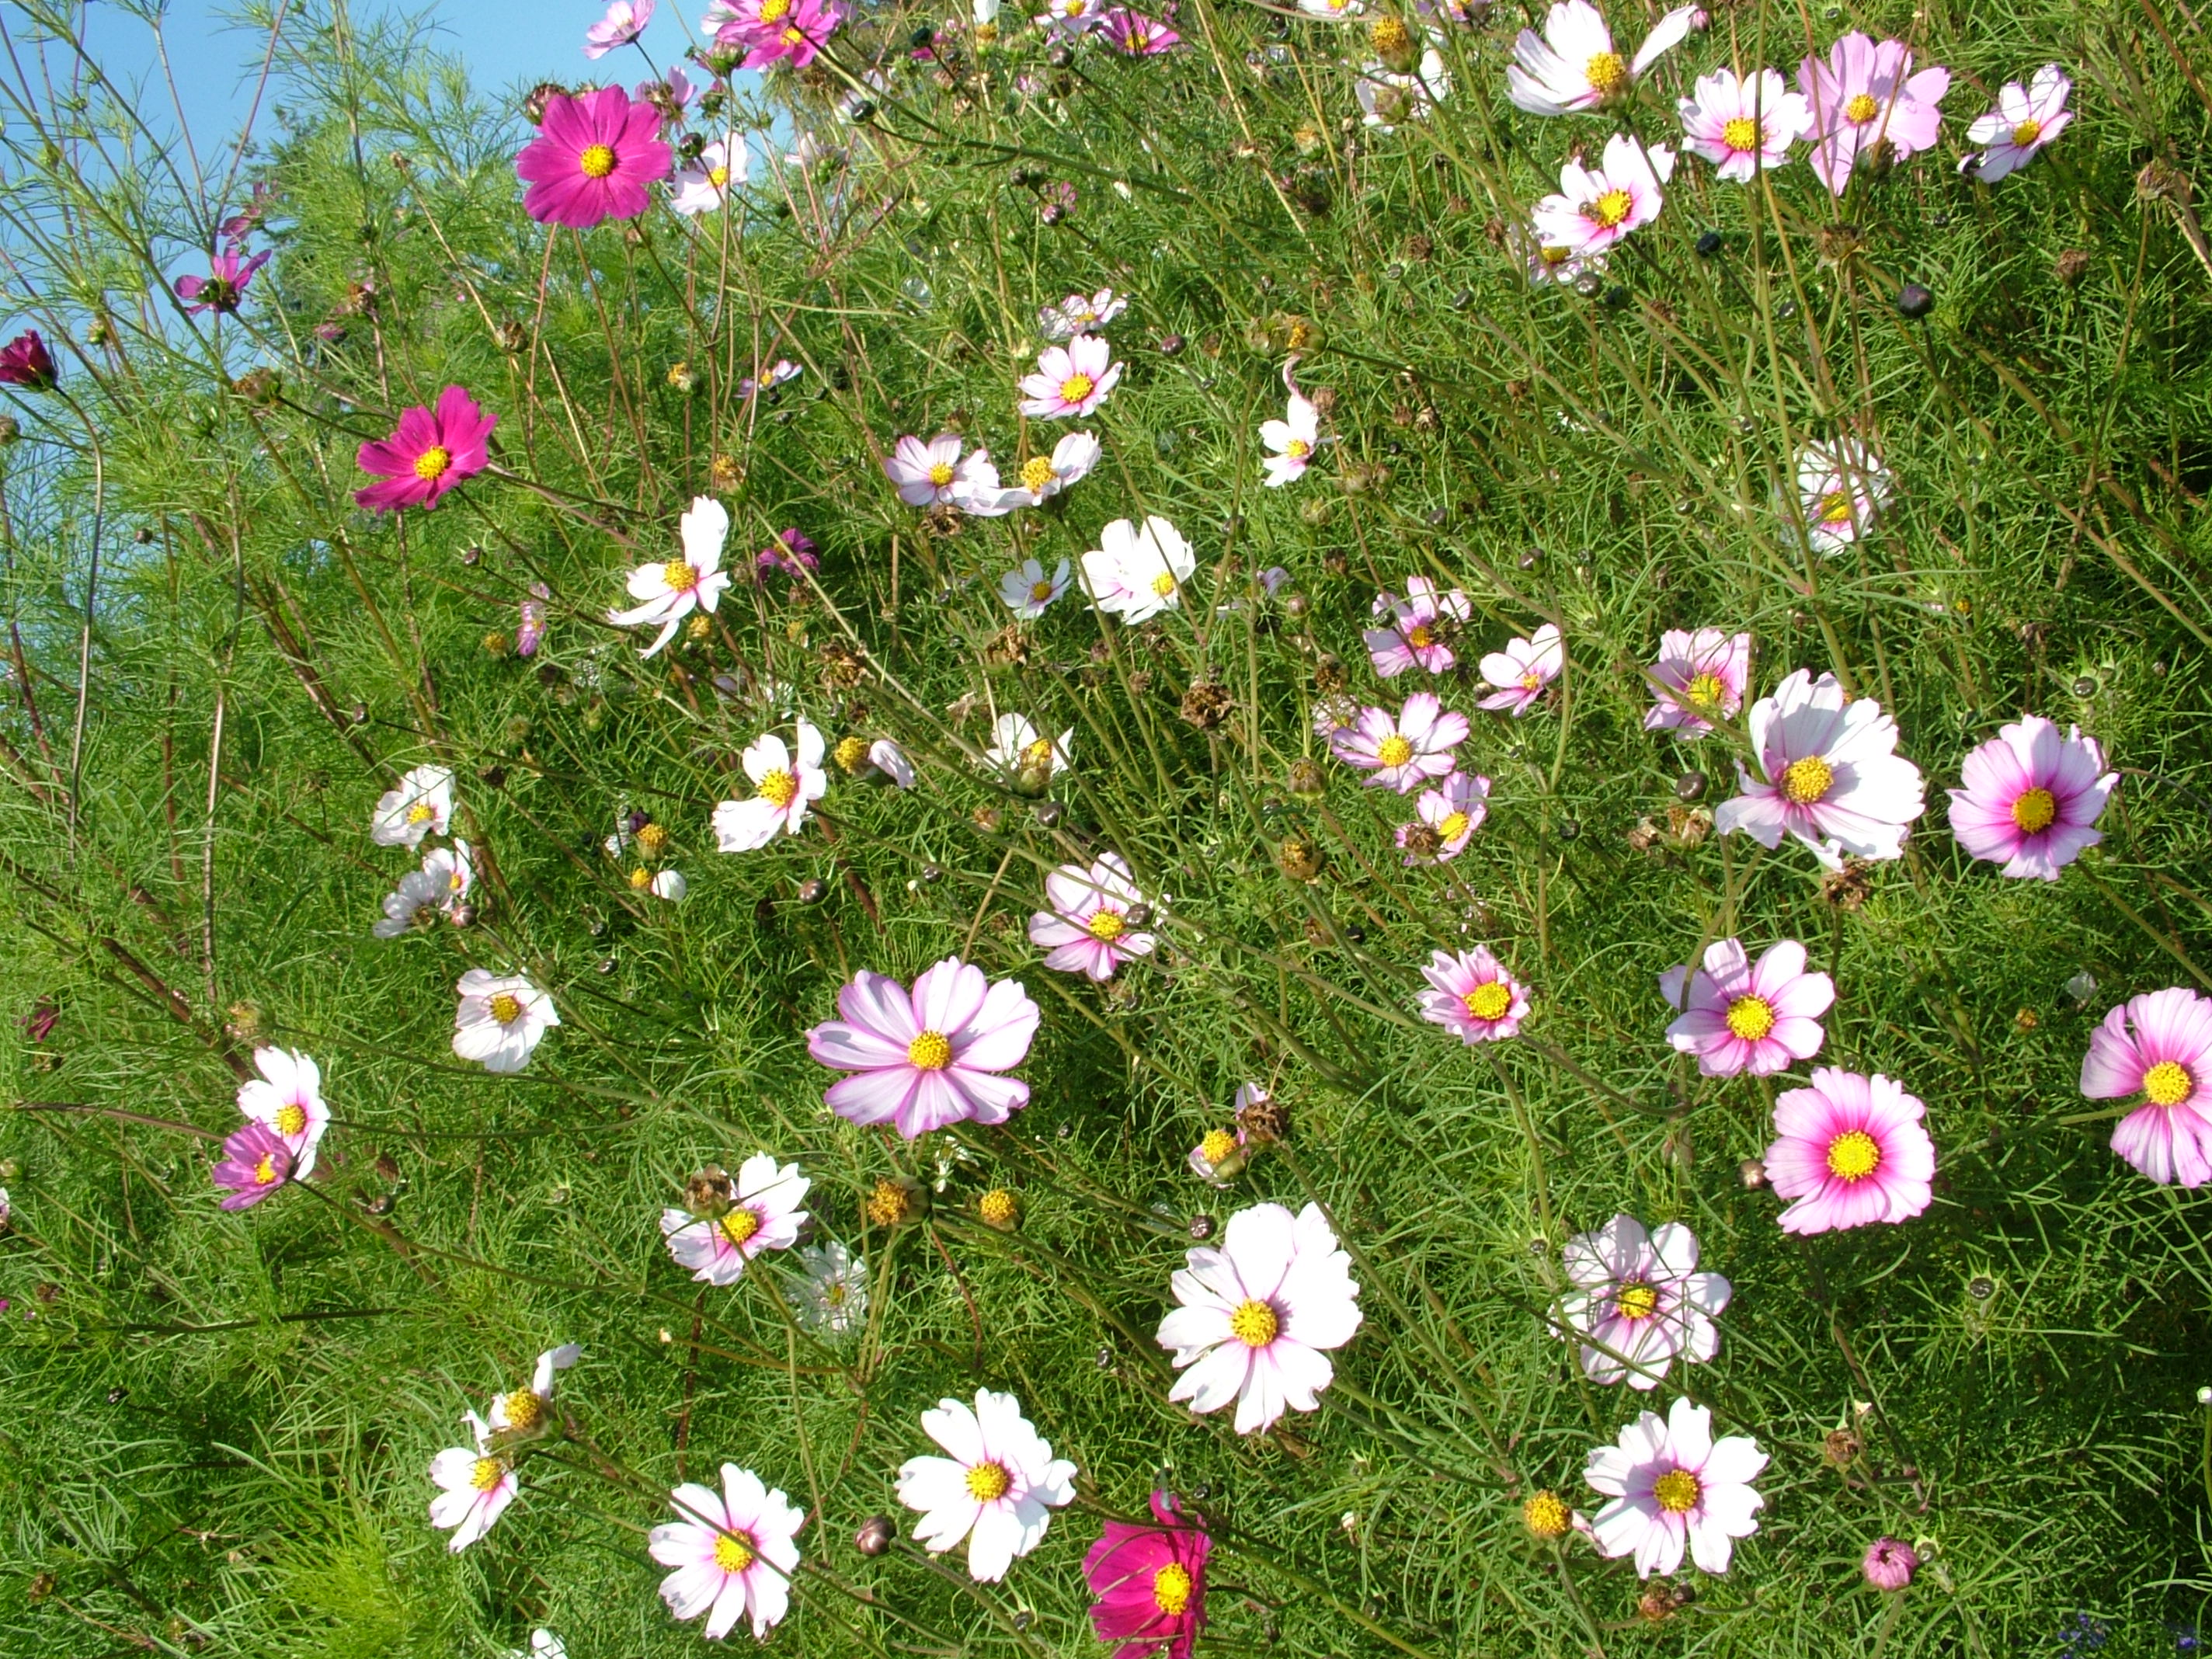 Click this image to download full resolution grass-flowers photo free ...